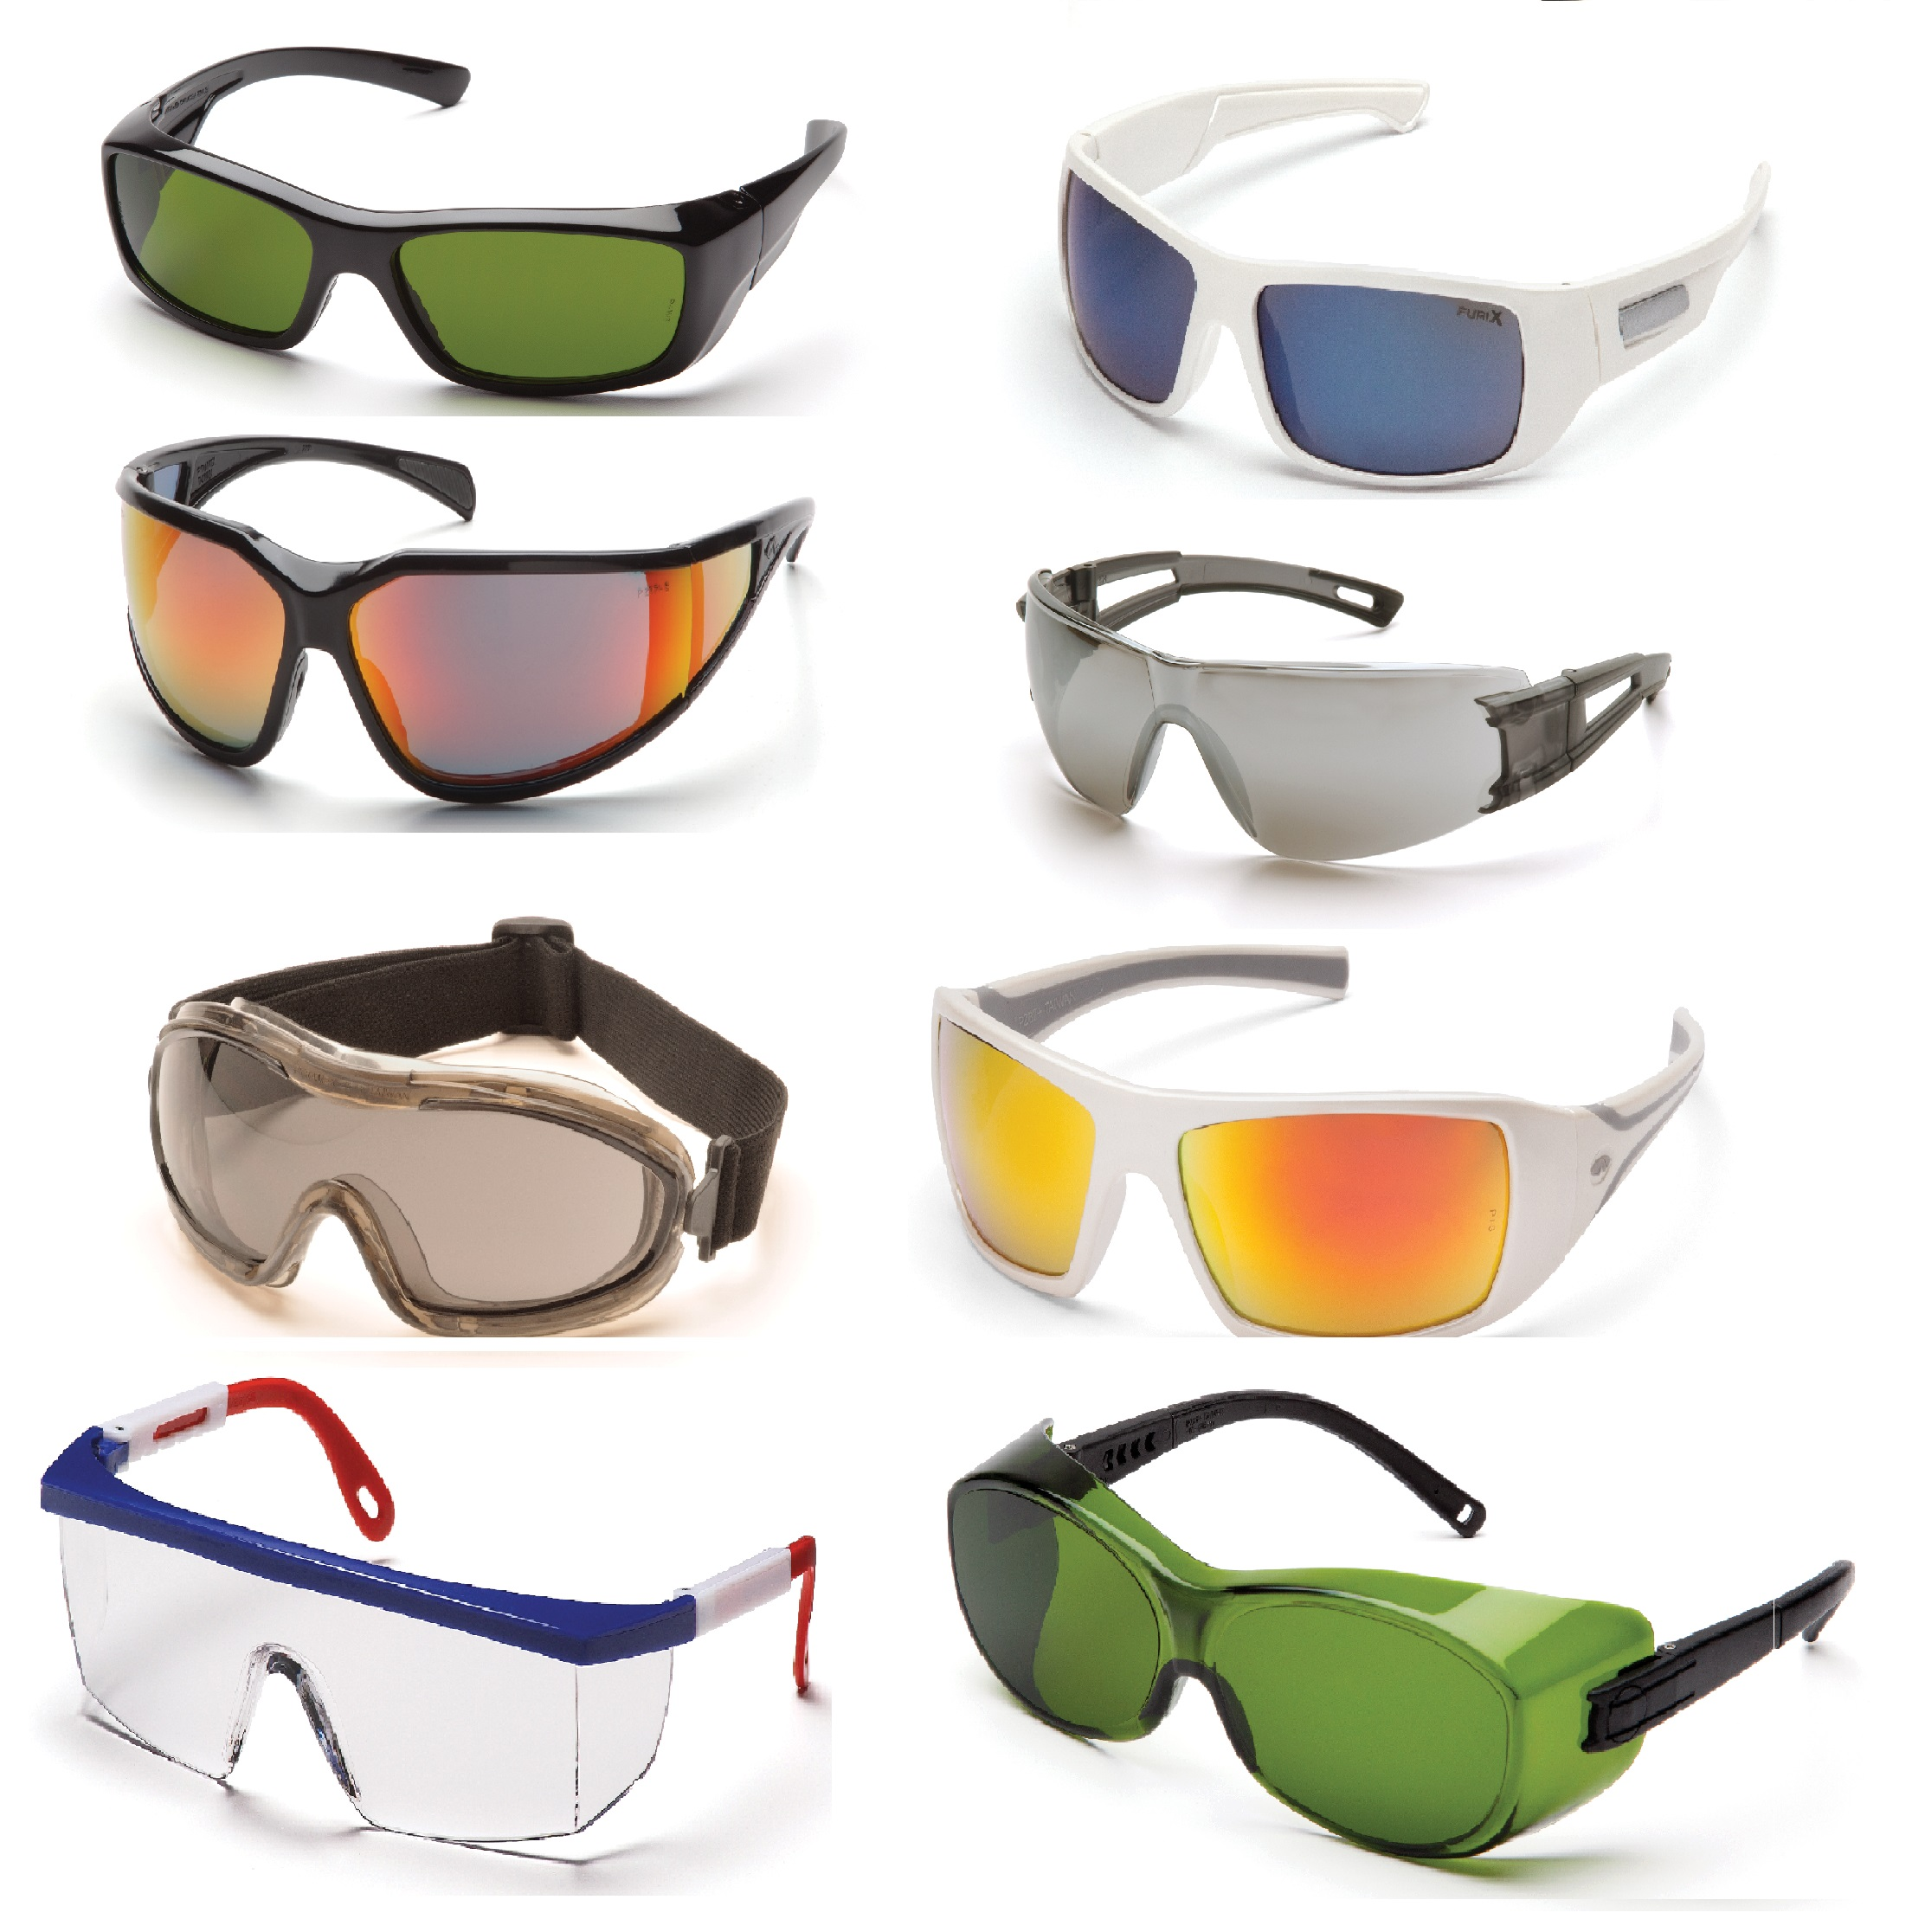 home-page-safety-eyewear-2.jpg